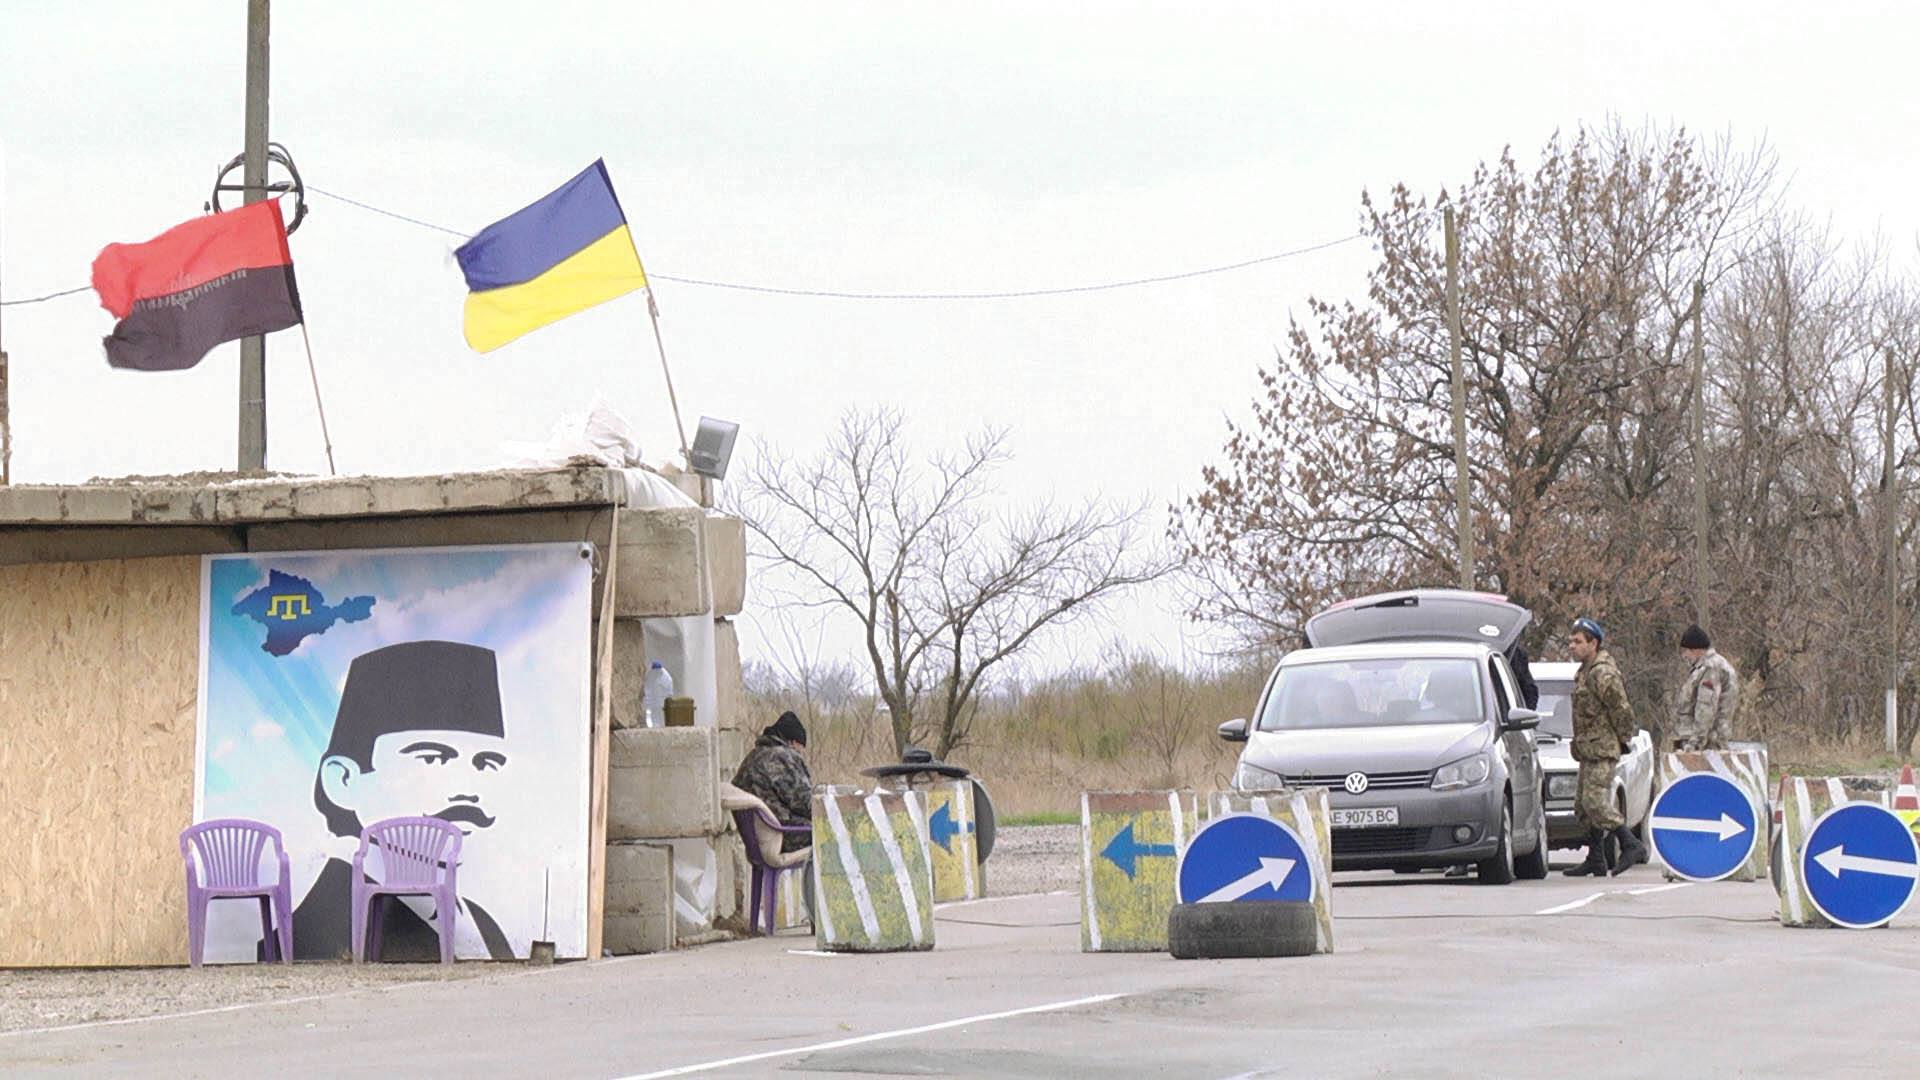 CONSEQUENCES OF THE BLOCKADE OF CRIMEA: HUMAN RIGHTS VIOLATIONS AND HUMANITARIAN ISSUES